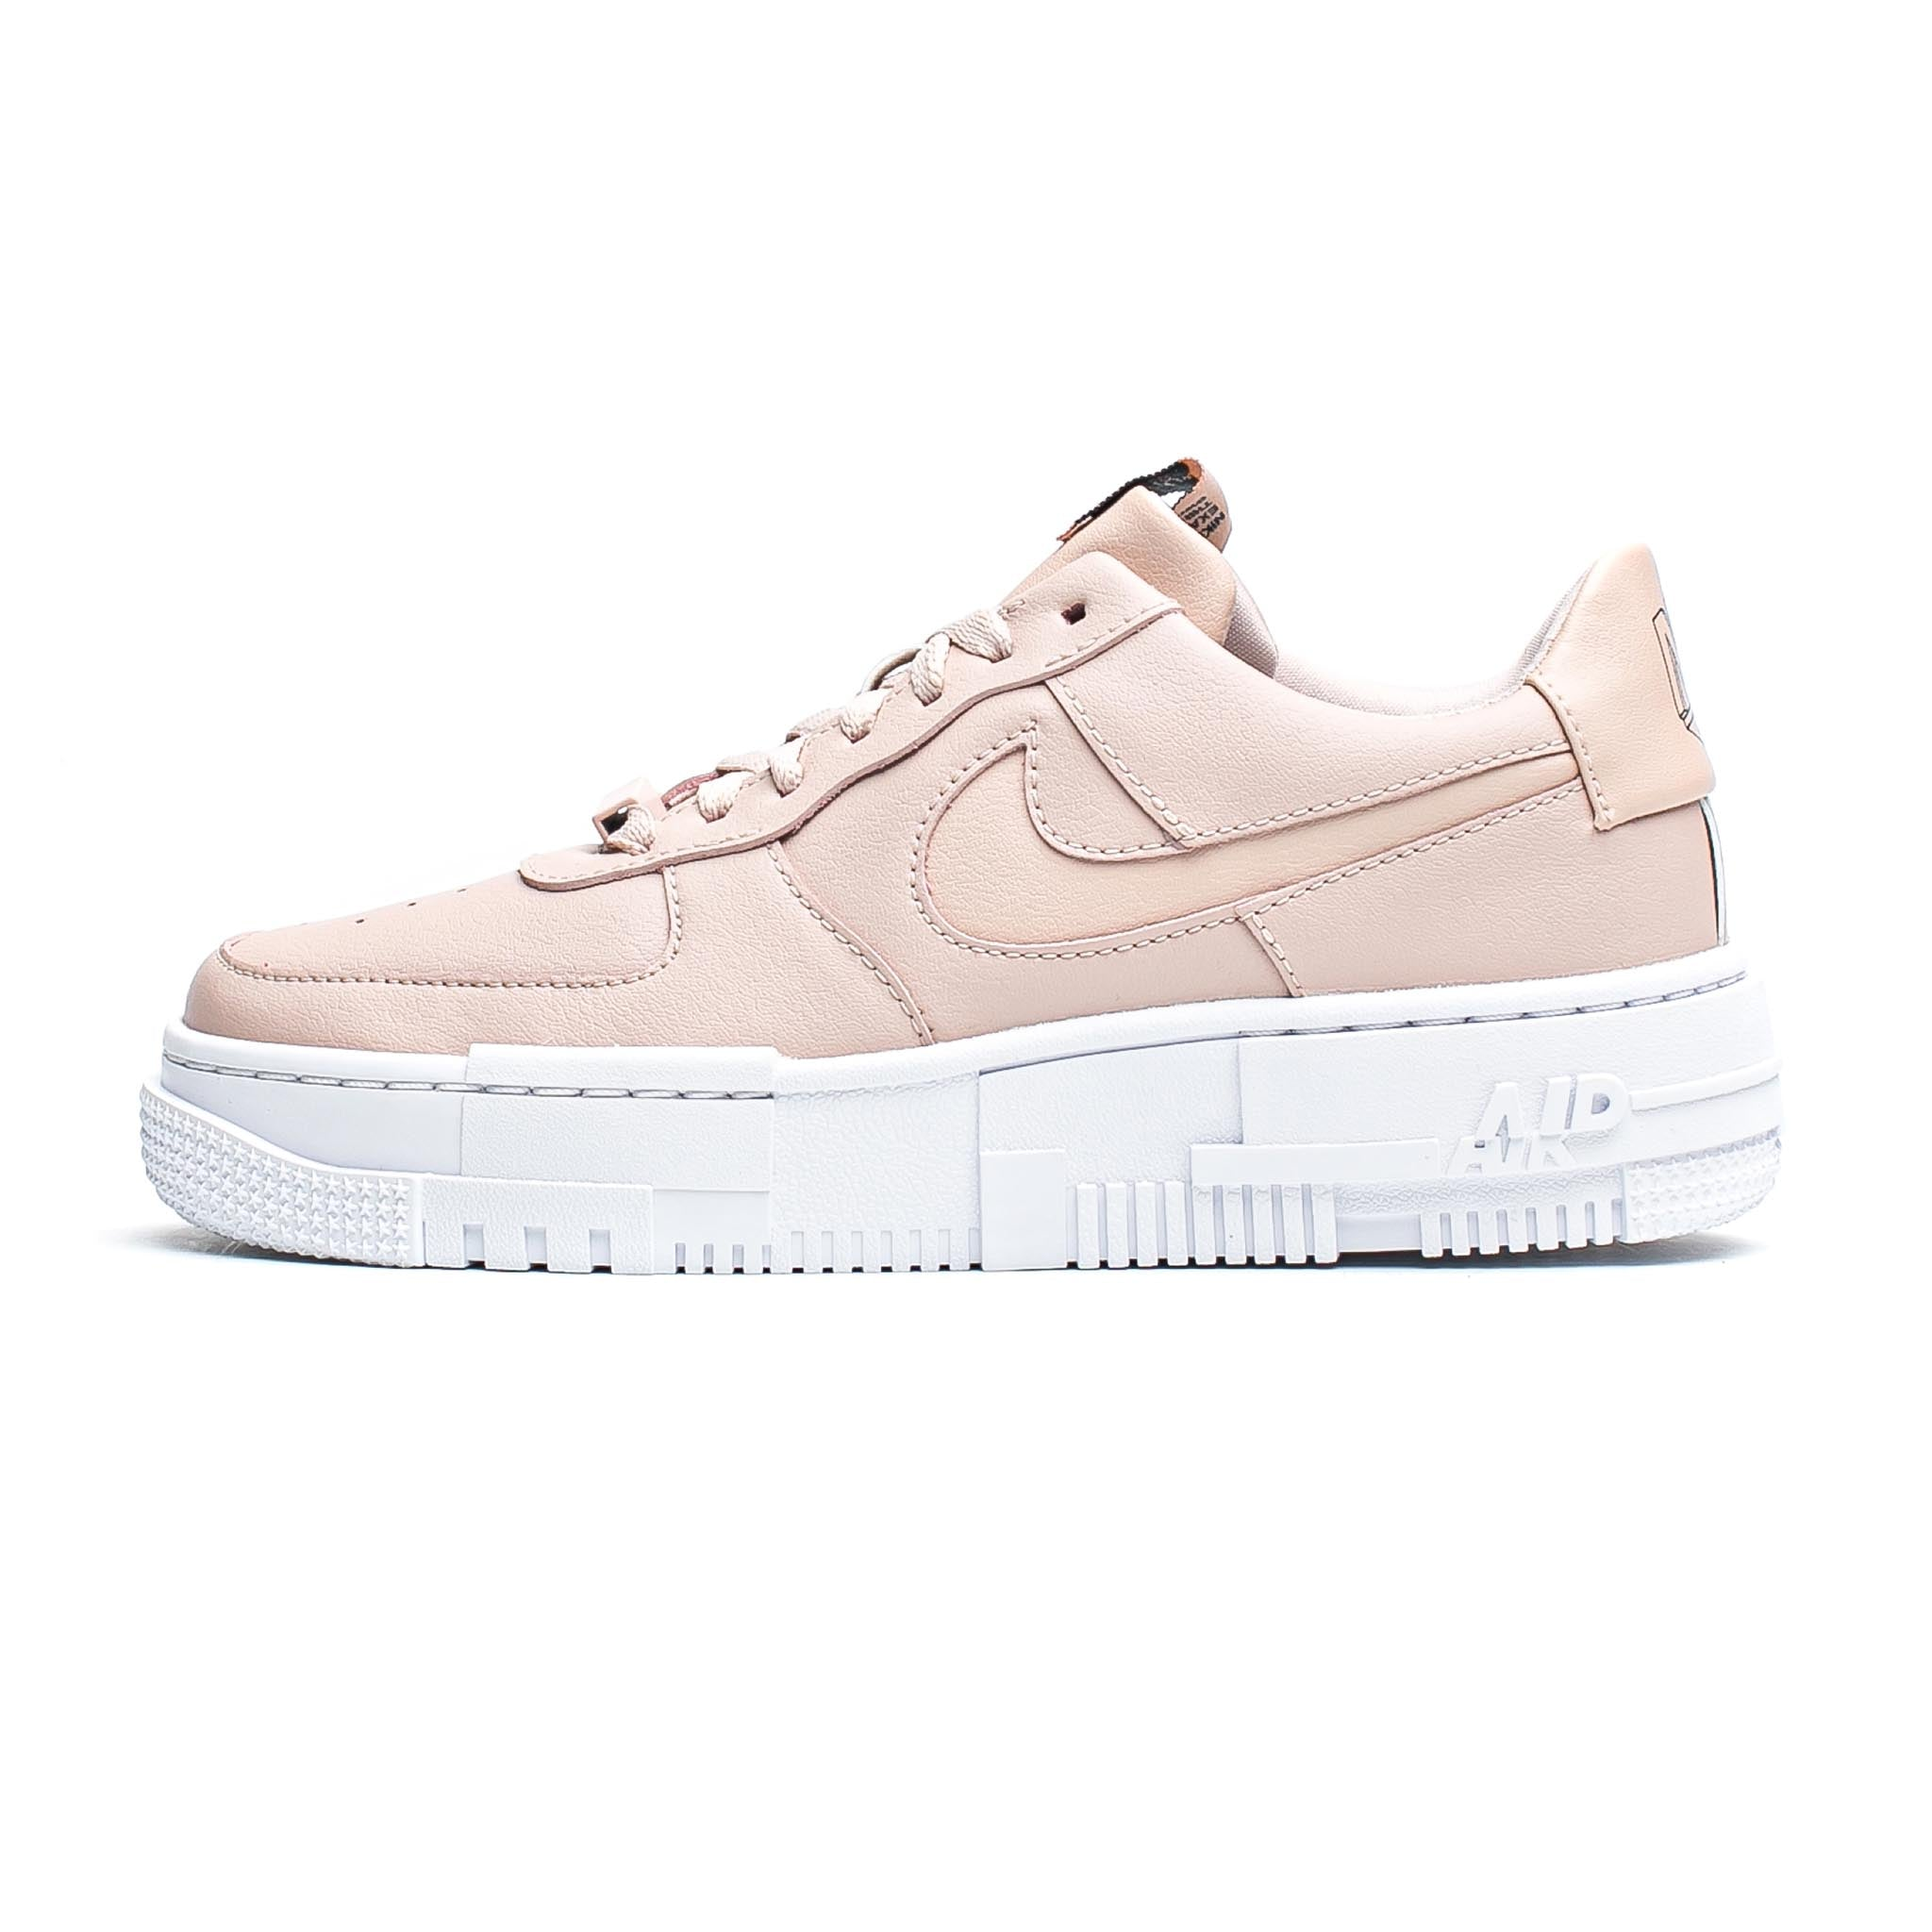 Nike Air Force 1 Pixel 'Particle Beige'